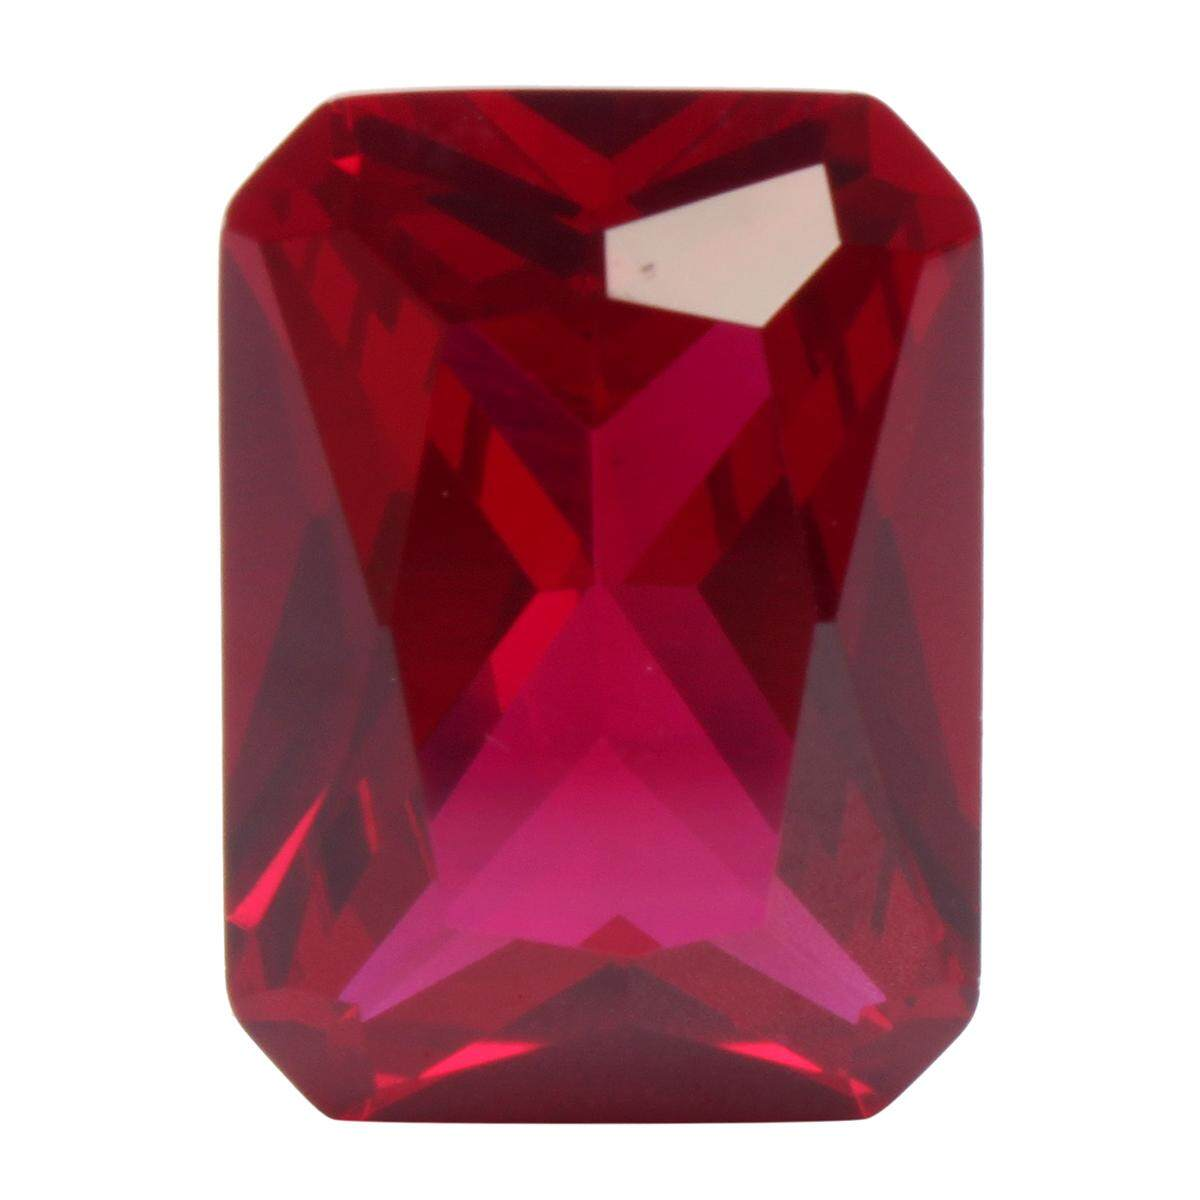 Crystals for Women for sale - Colored Gems for Women online brands